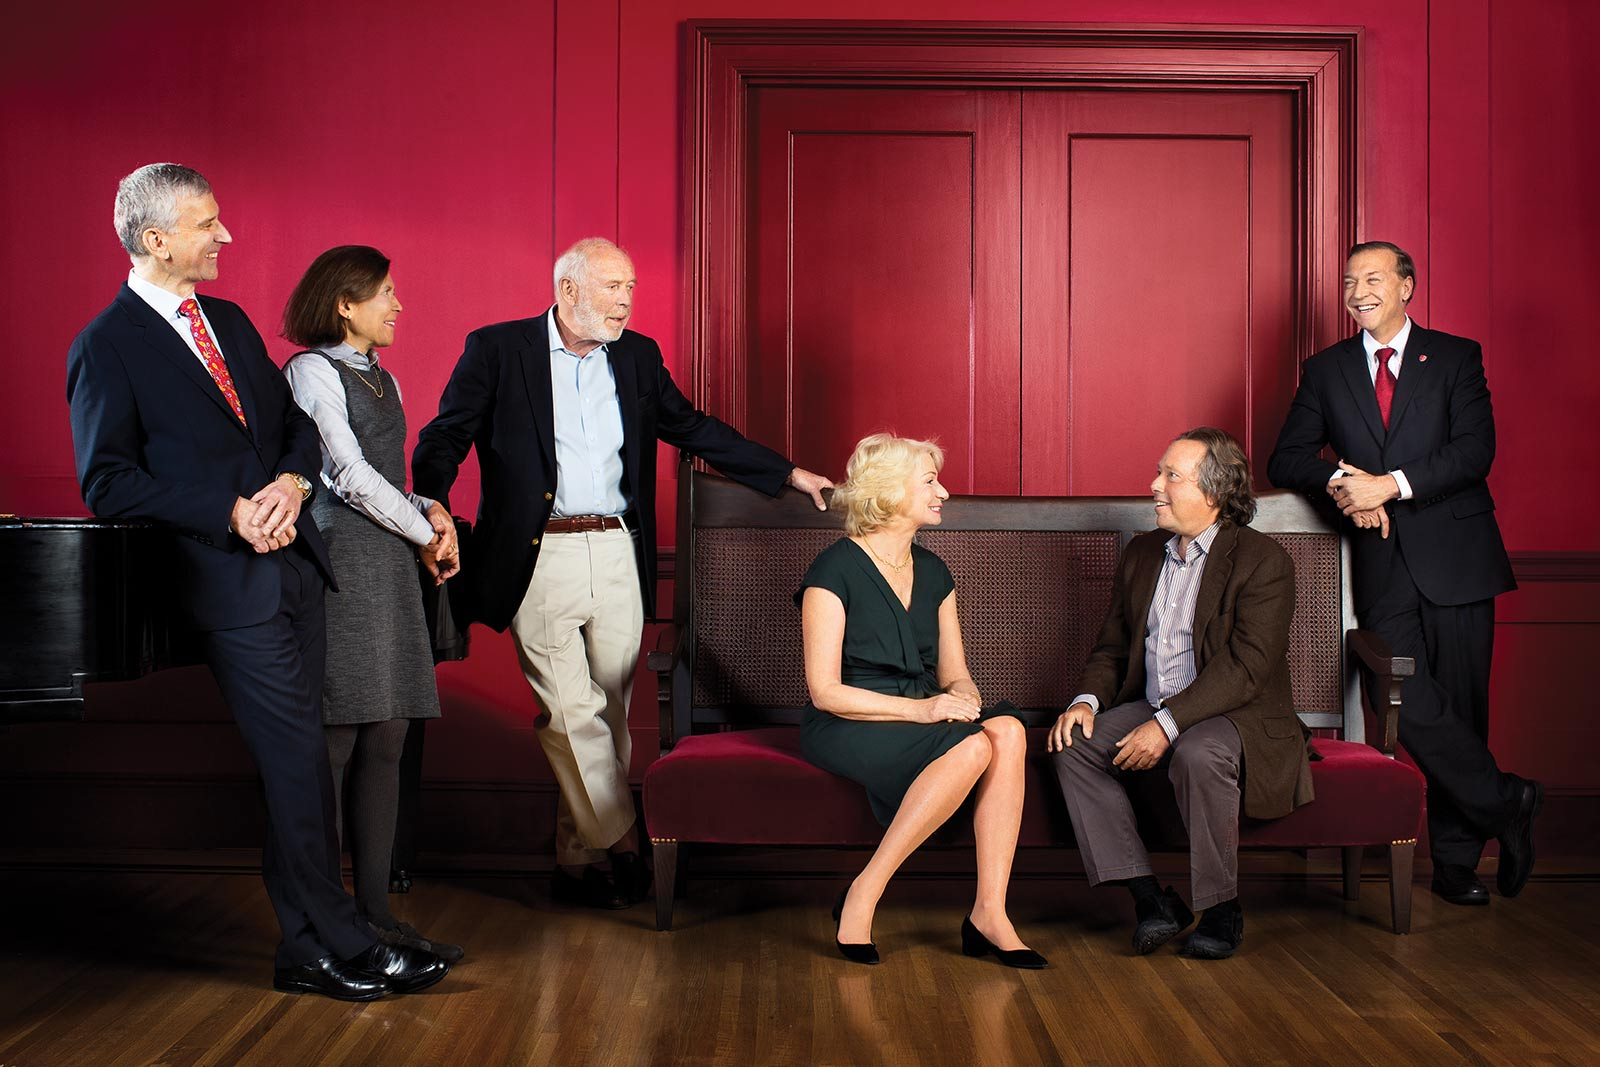 Left to right: Cary F. Staller,  Marisela H. Staller,  James H. Simons,  Marilyn H. Simons,  Richard L. Gelfond and  President Samuel L. Stanley Jr.